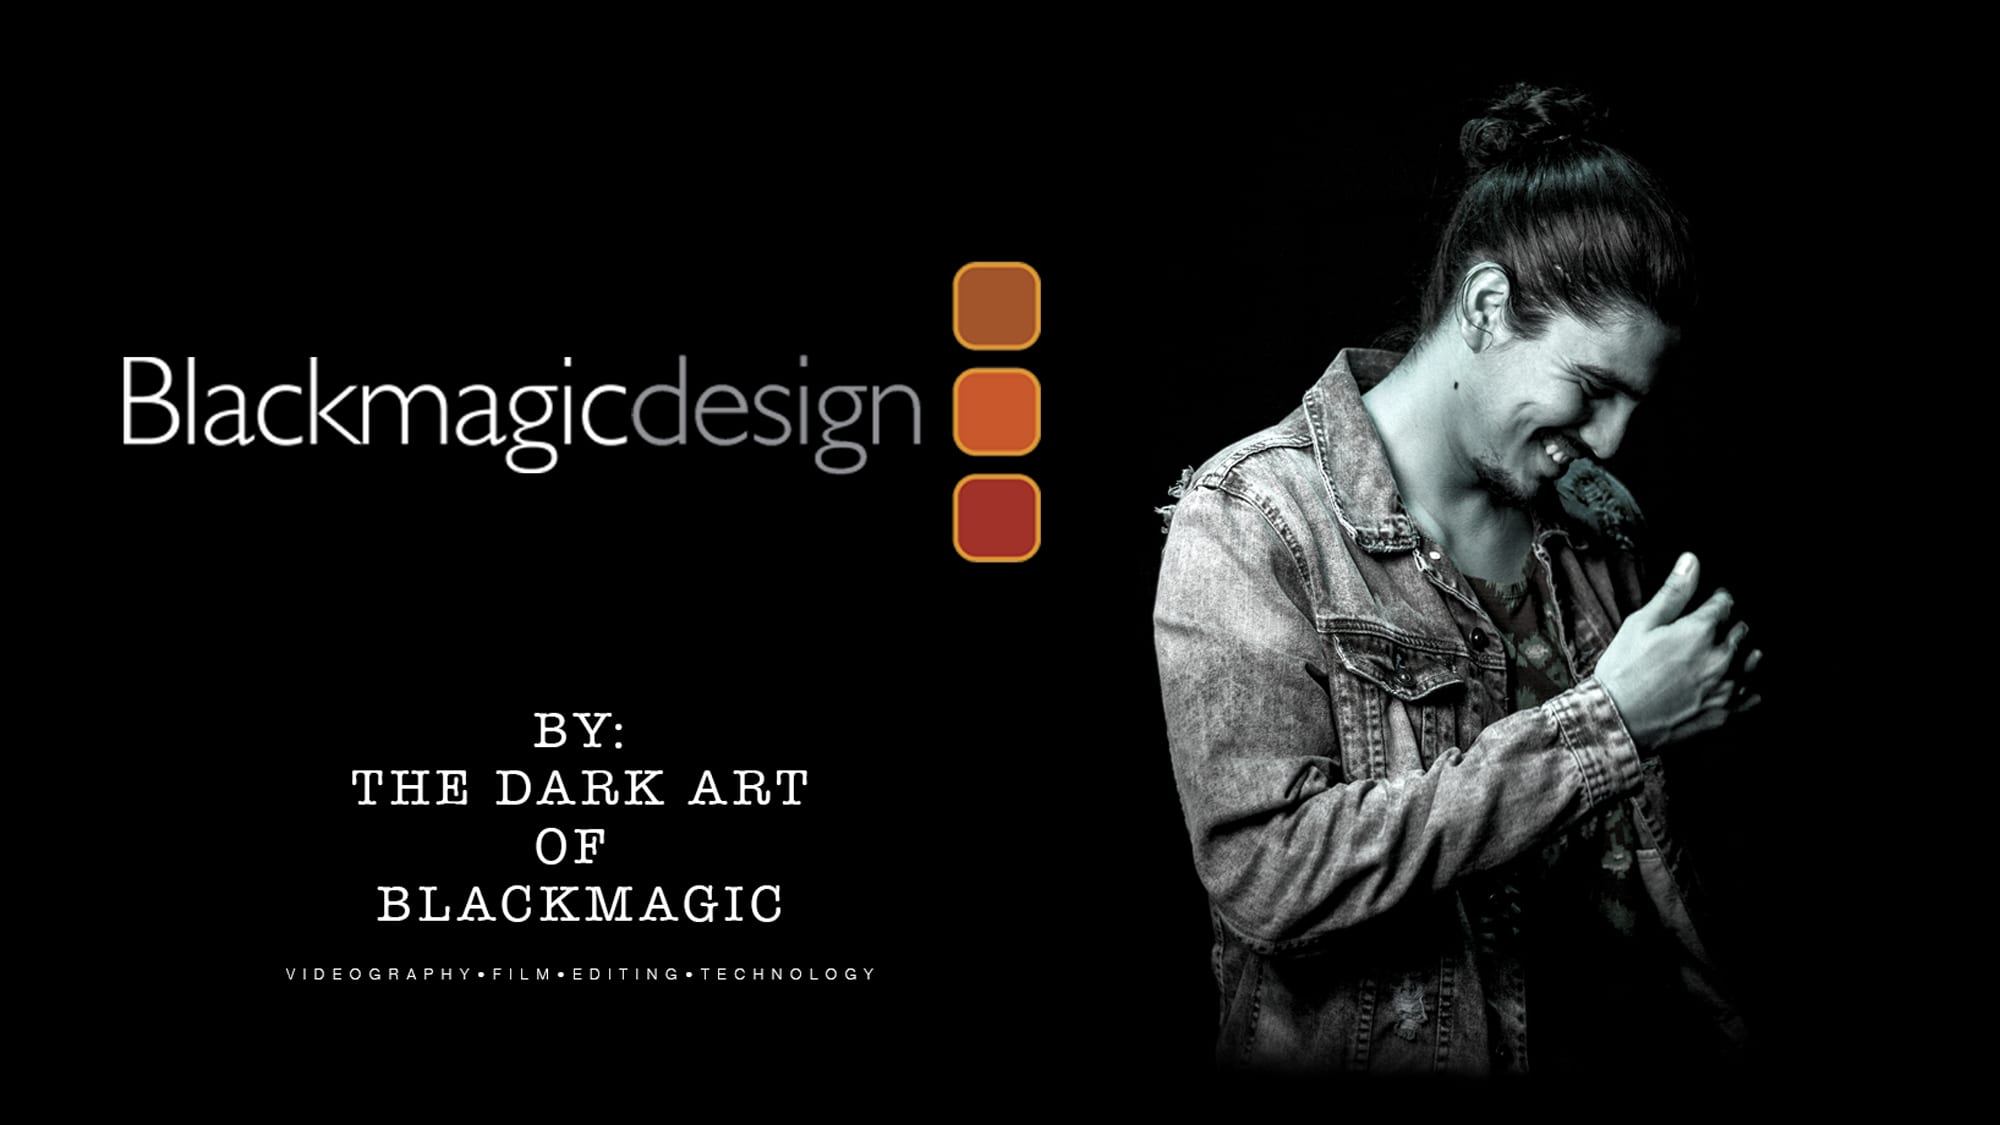 How Blackmagic Design Changed Videography Forever